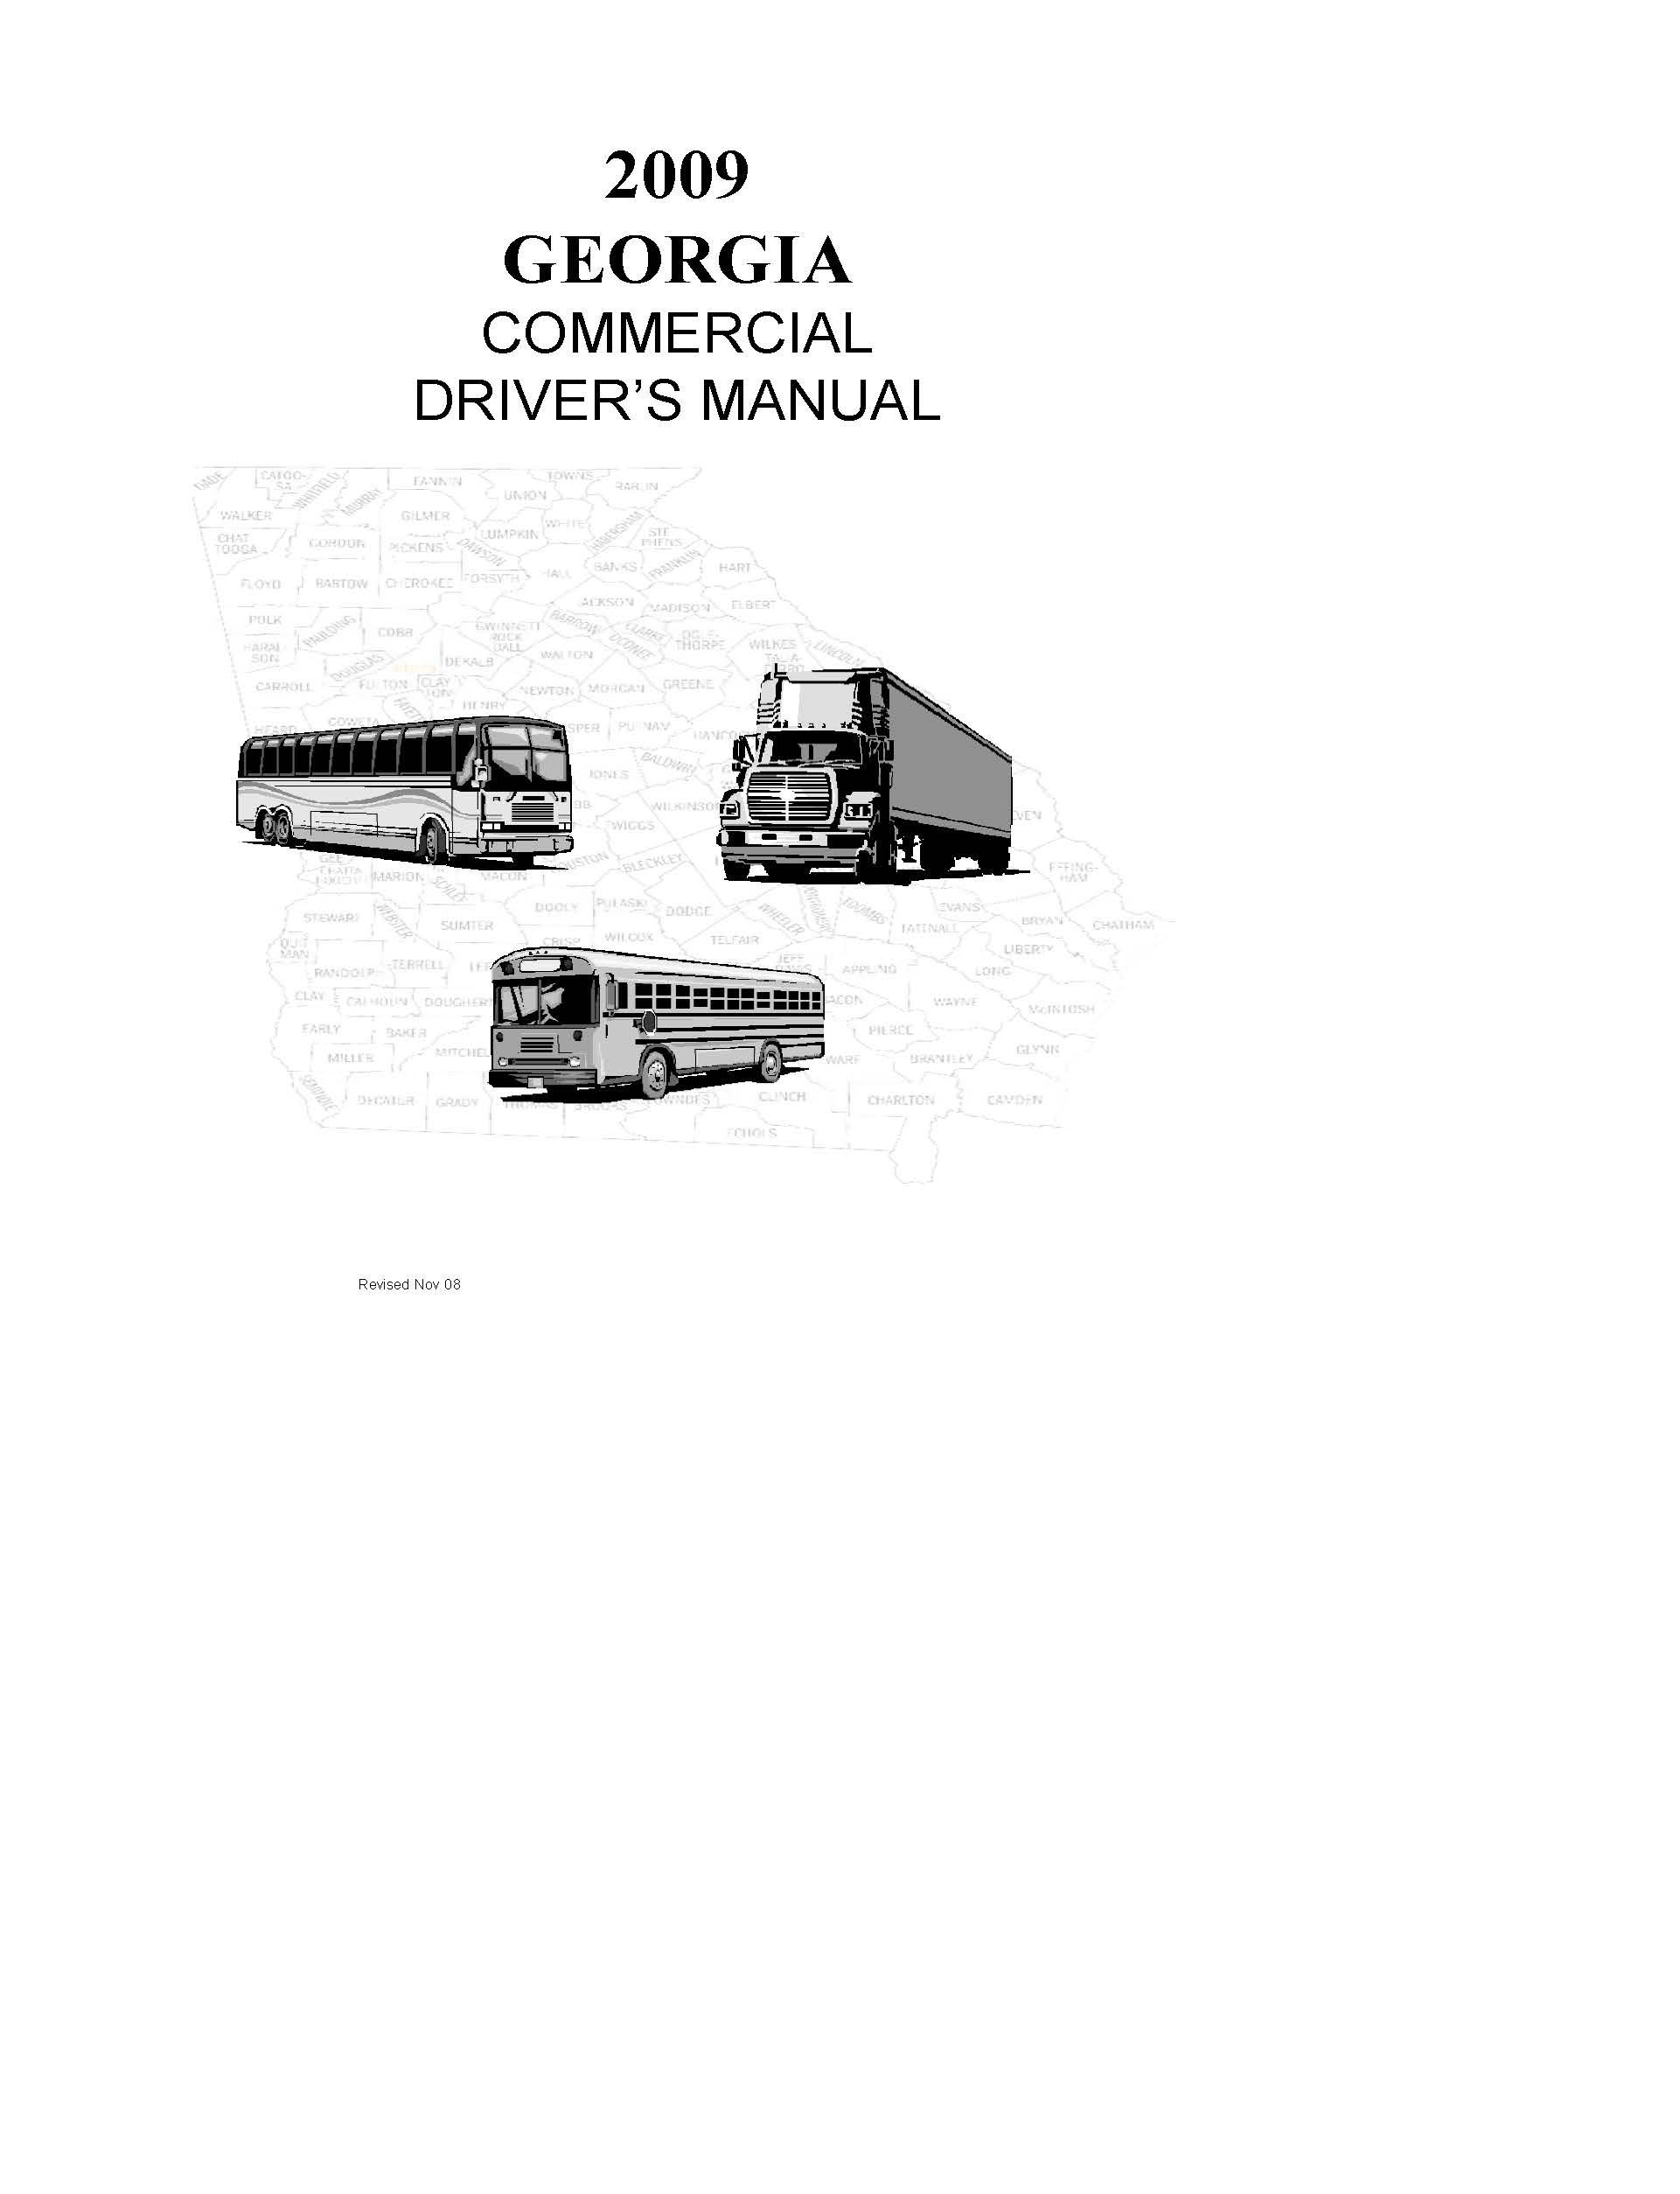 Georgia Commercial Drivers License Manual 2009